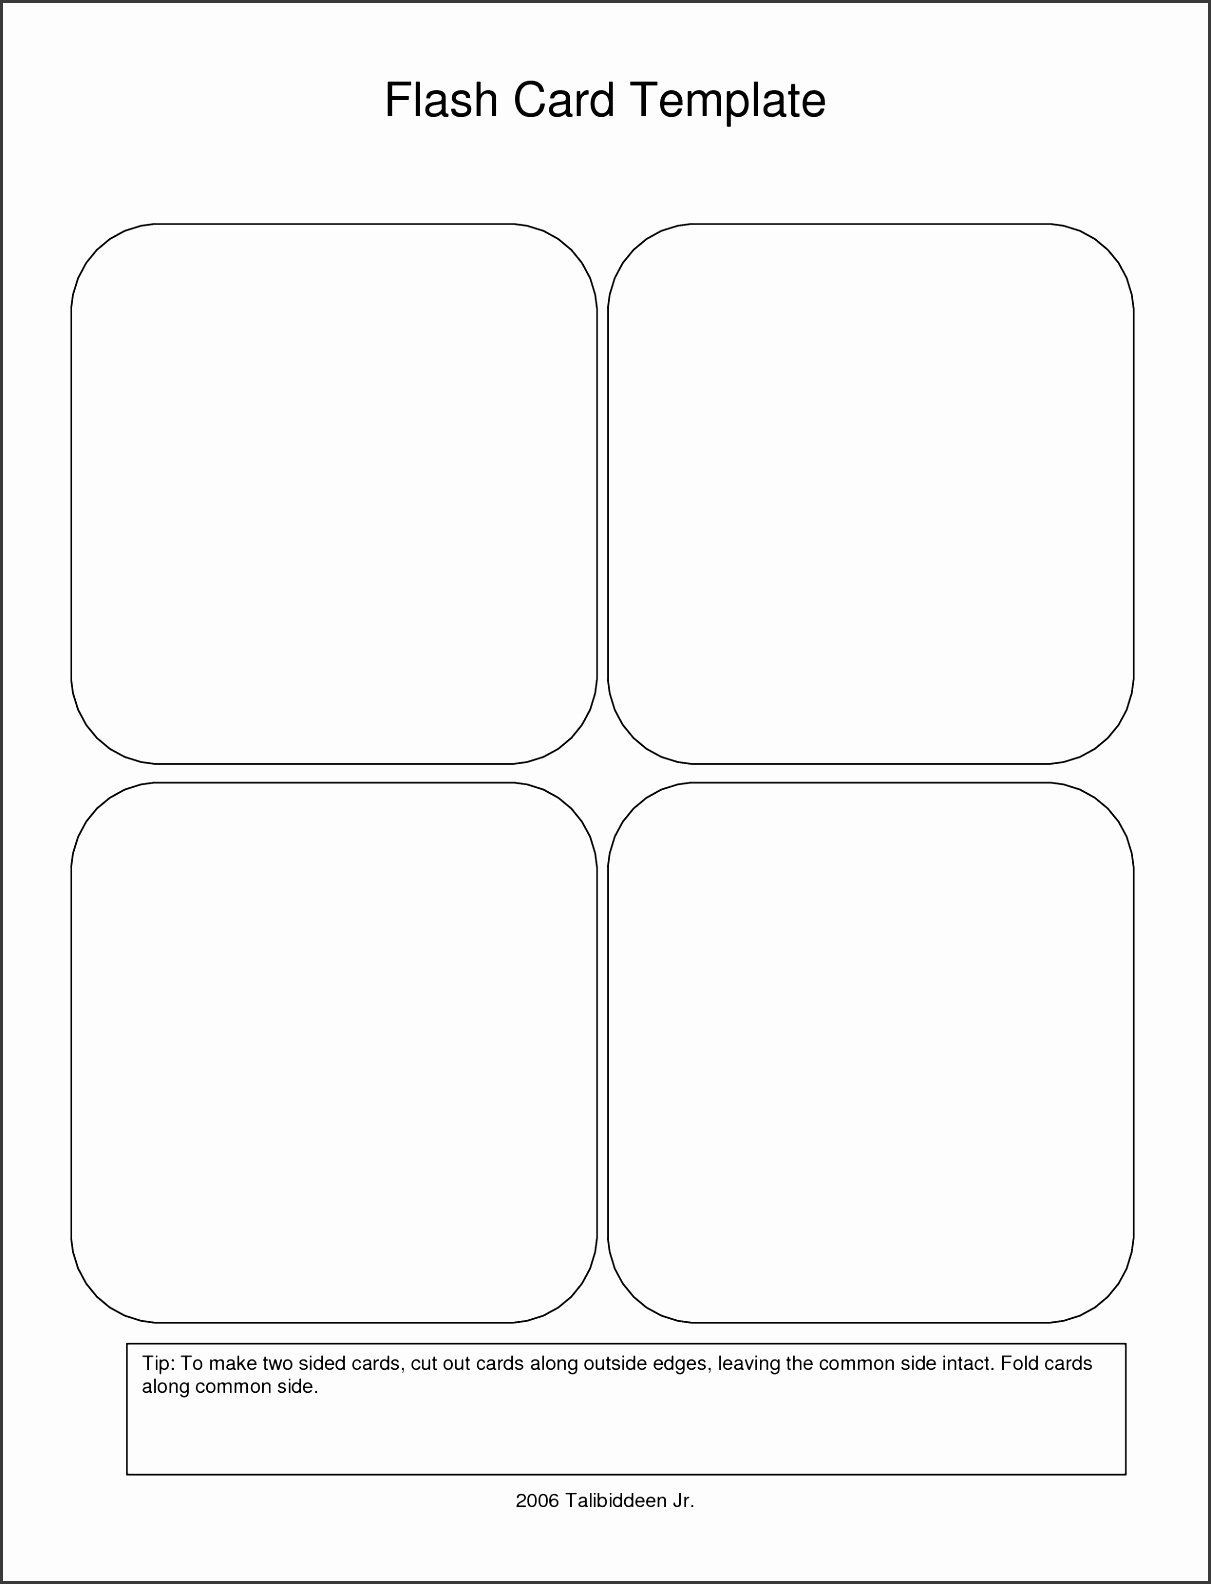 Word Flash Card Template